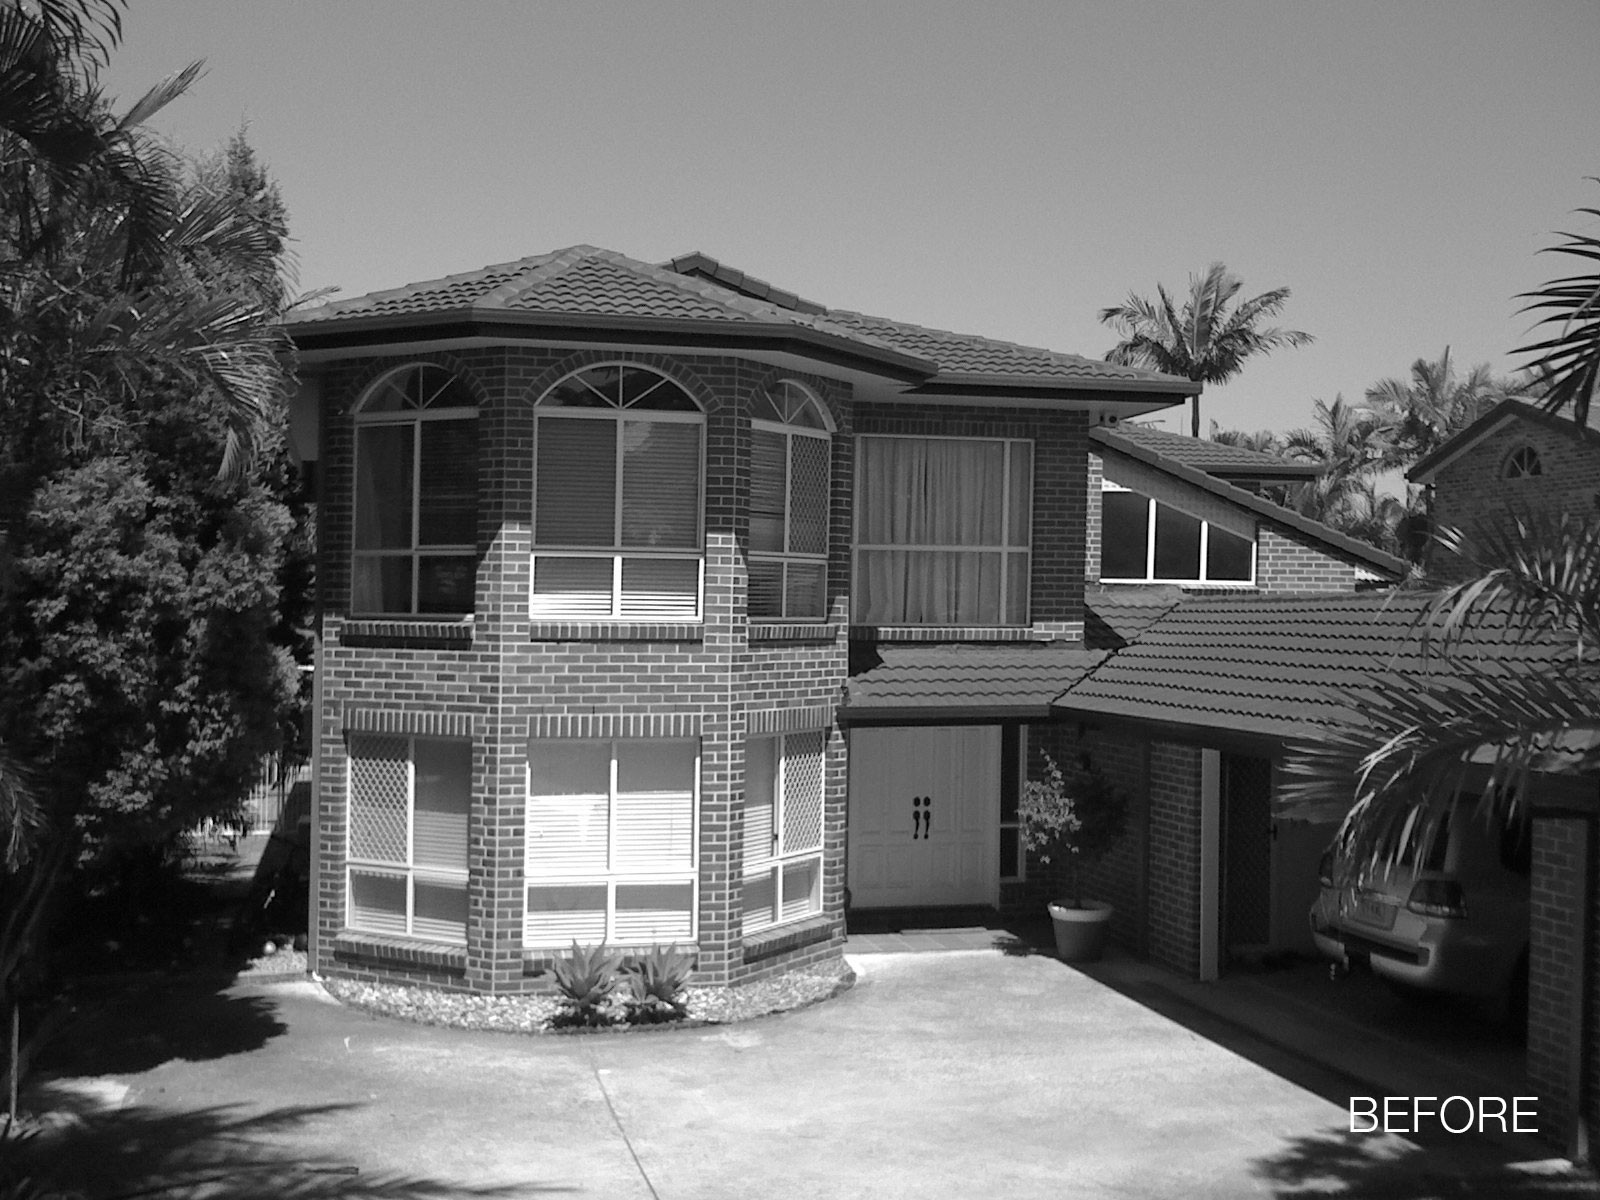 Original House. Image Courtesy of James Russell Architect